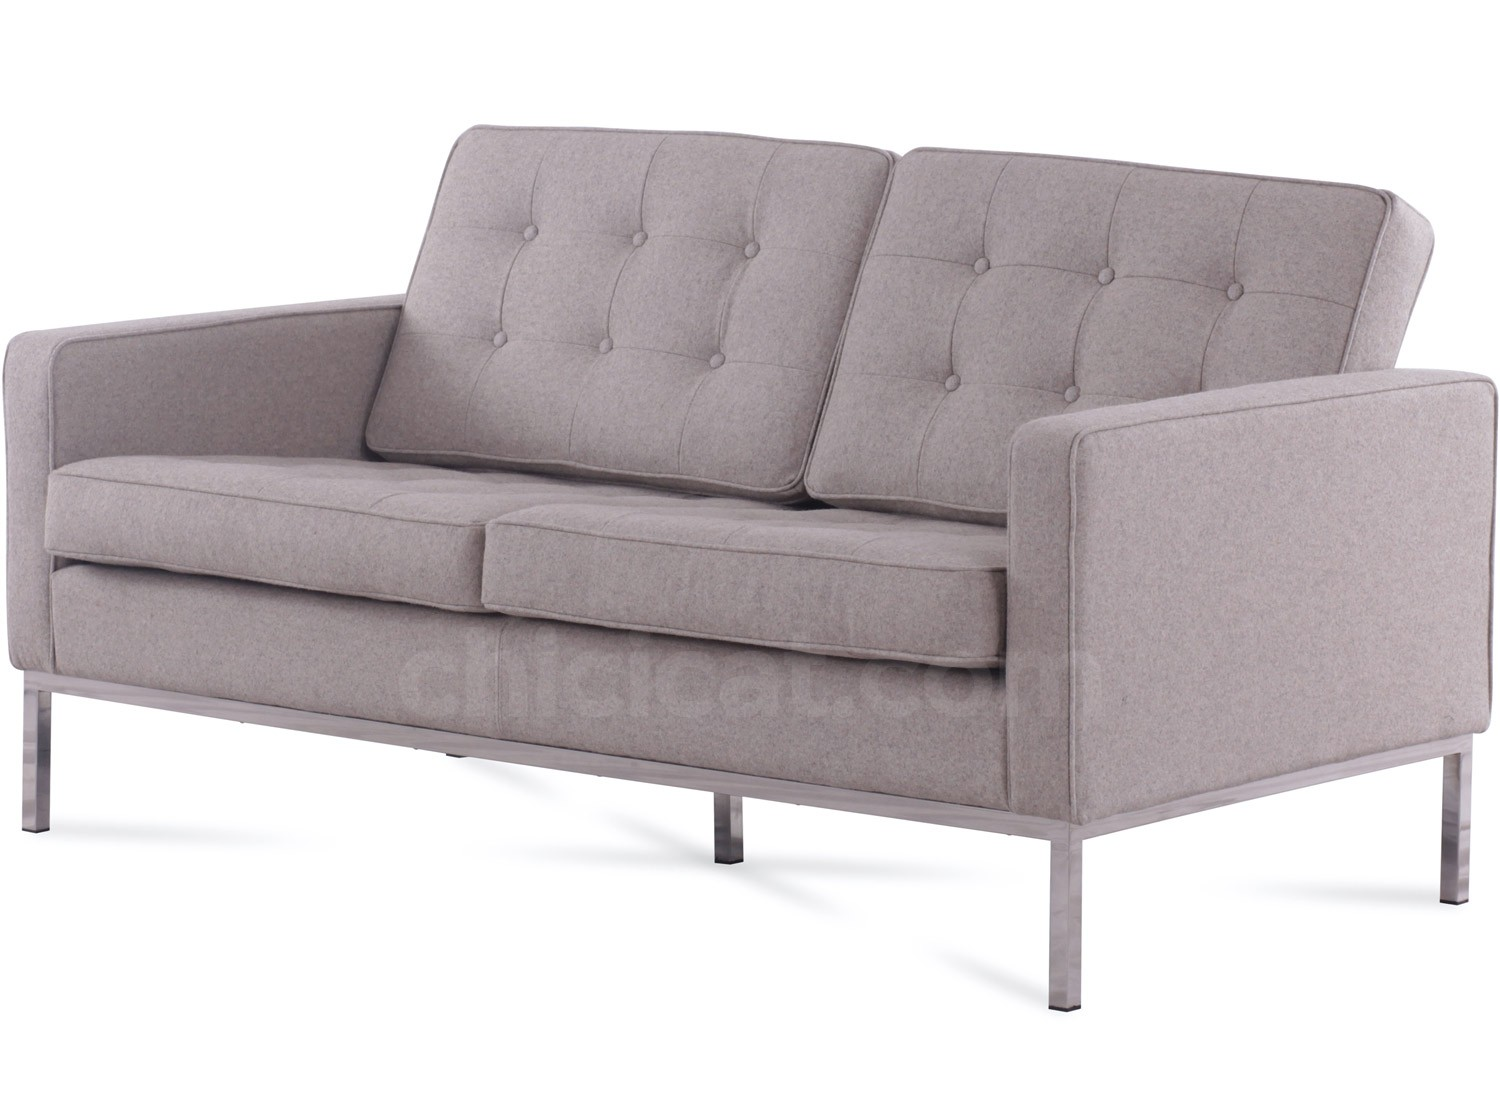 Replica Sofa Florence Knoll Sofa 2 Seater Wool Platinum Replica